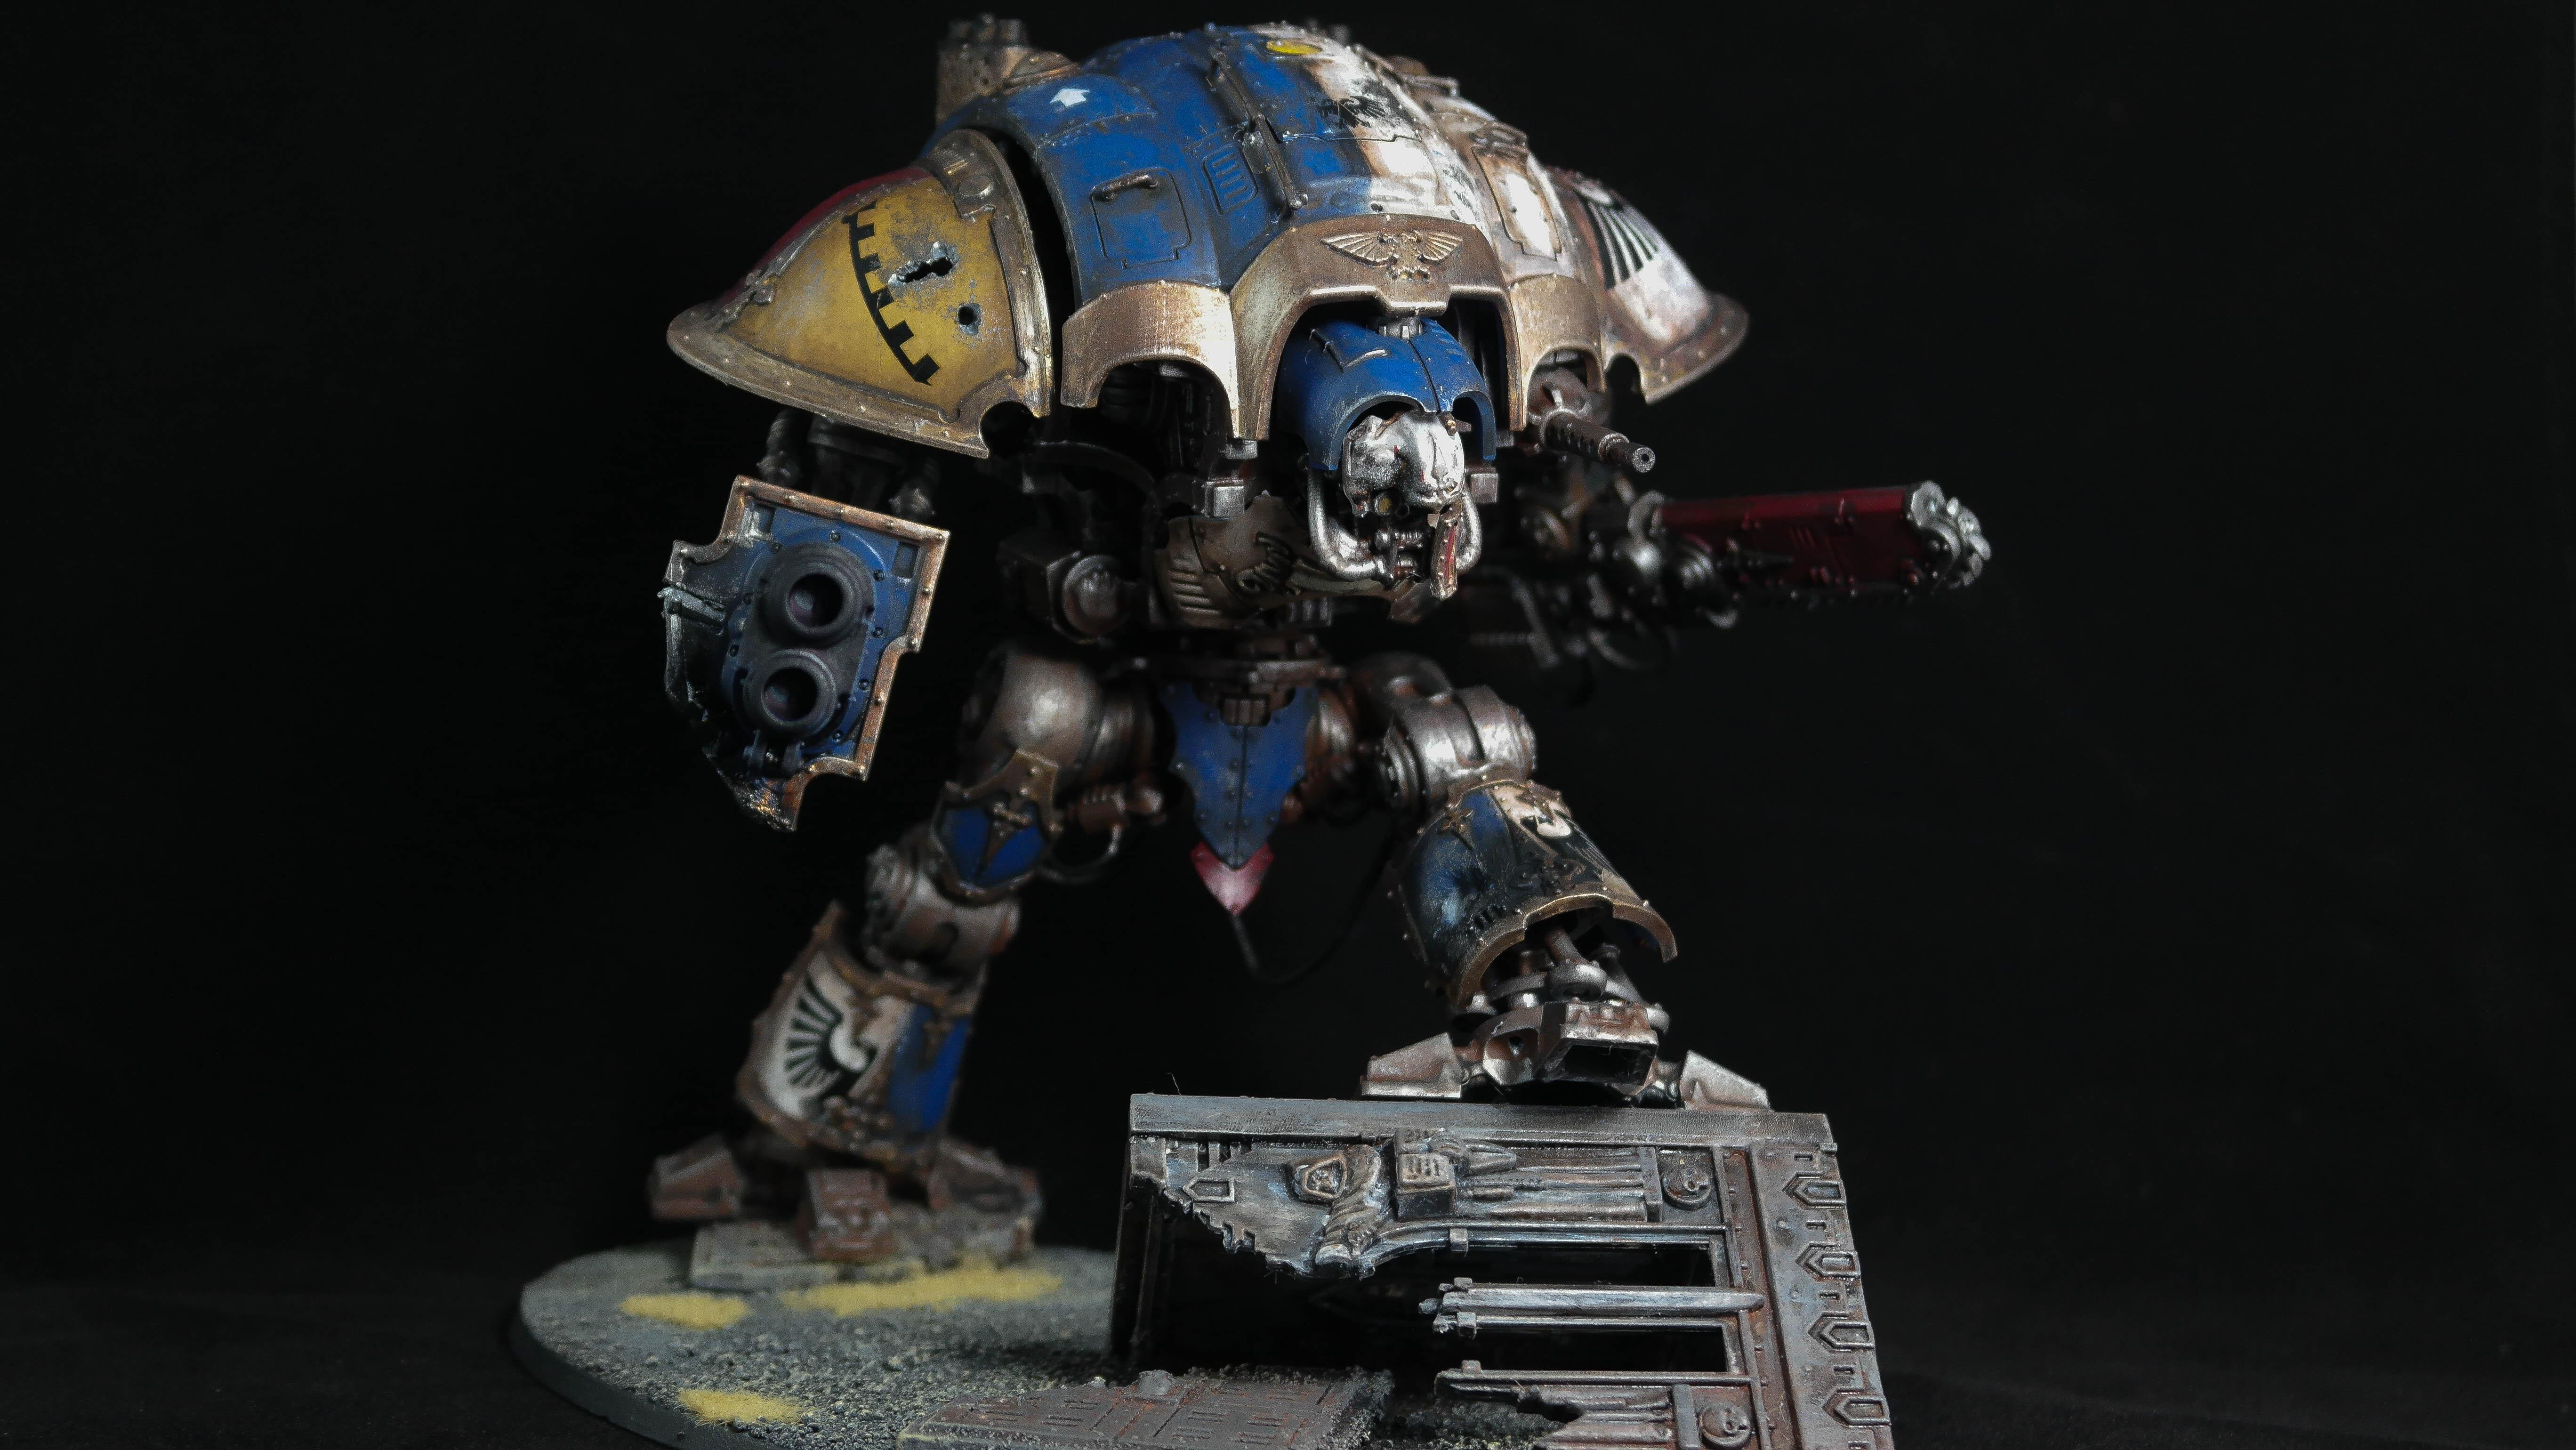 Battle Damage, Imperial Knight, Imperial Knight Titian, Knight Errant, Warhammer 40,000, Weathered